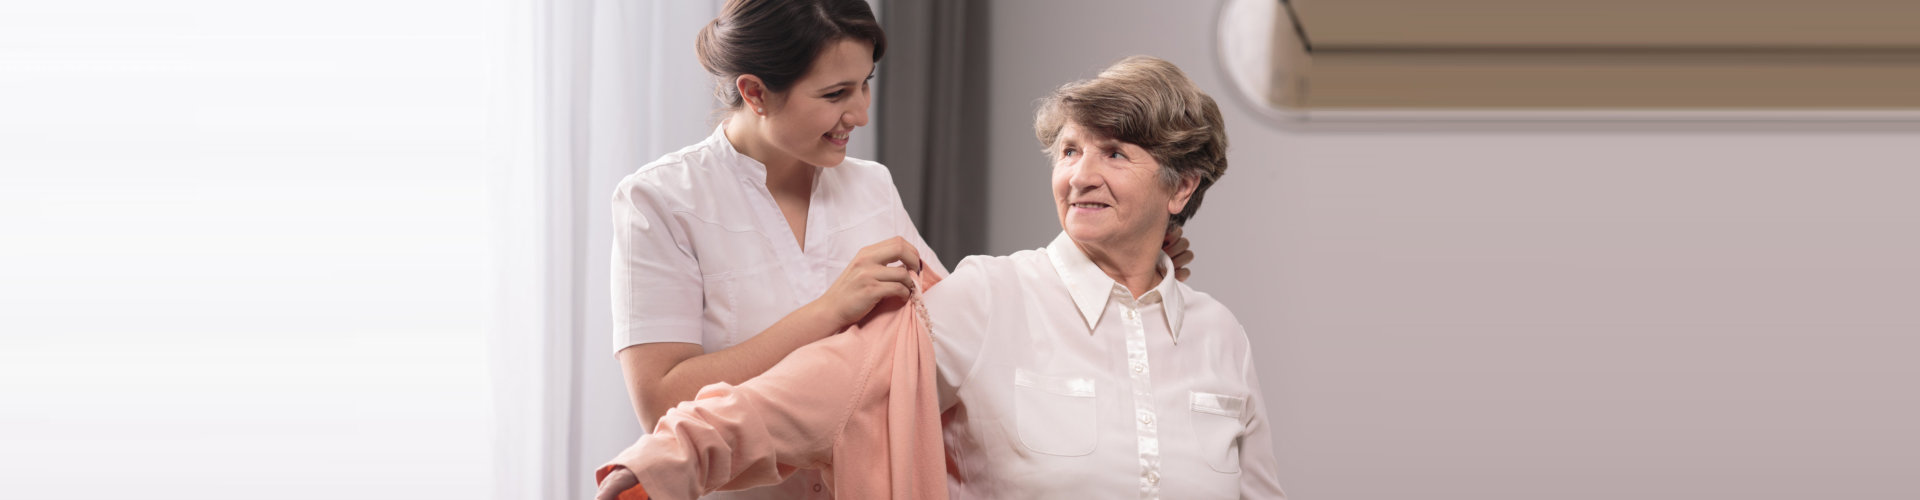 caregiver assisting elder woman on wearing a cloth